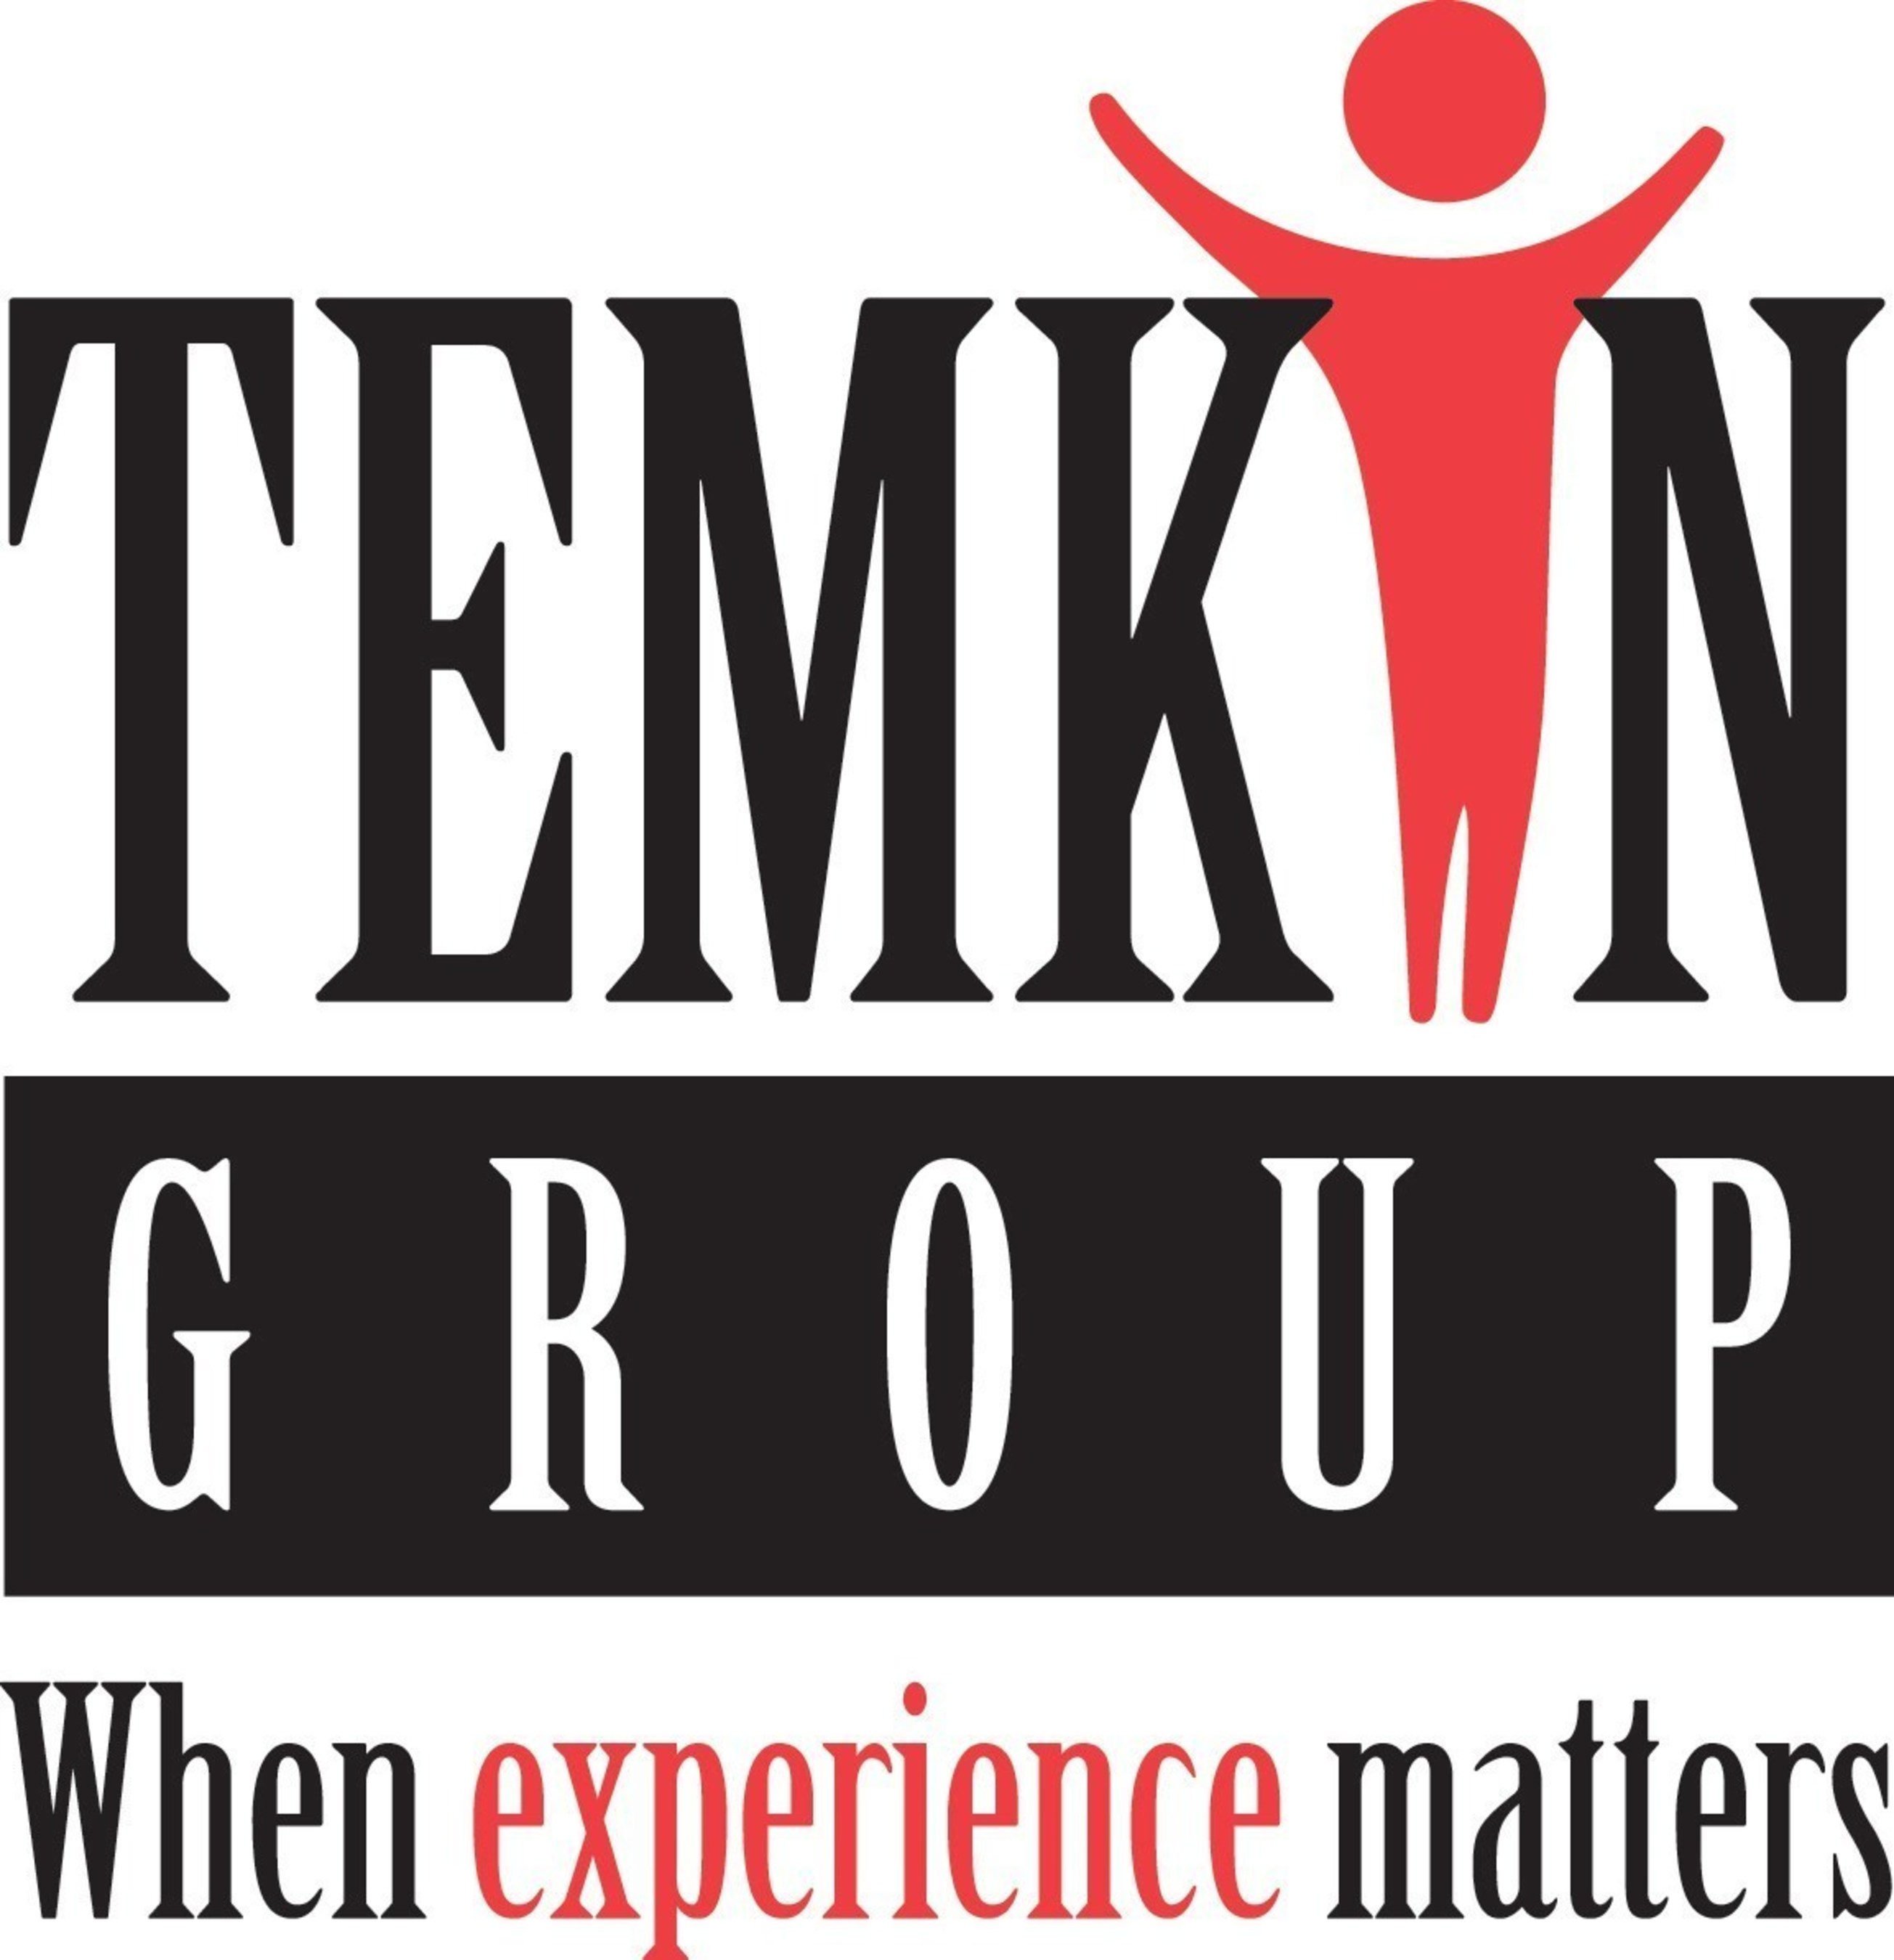 IBM, Intel, and HP Lead in Customer Experience, According to New Temkin Group Research